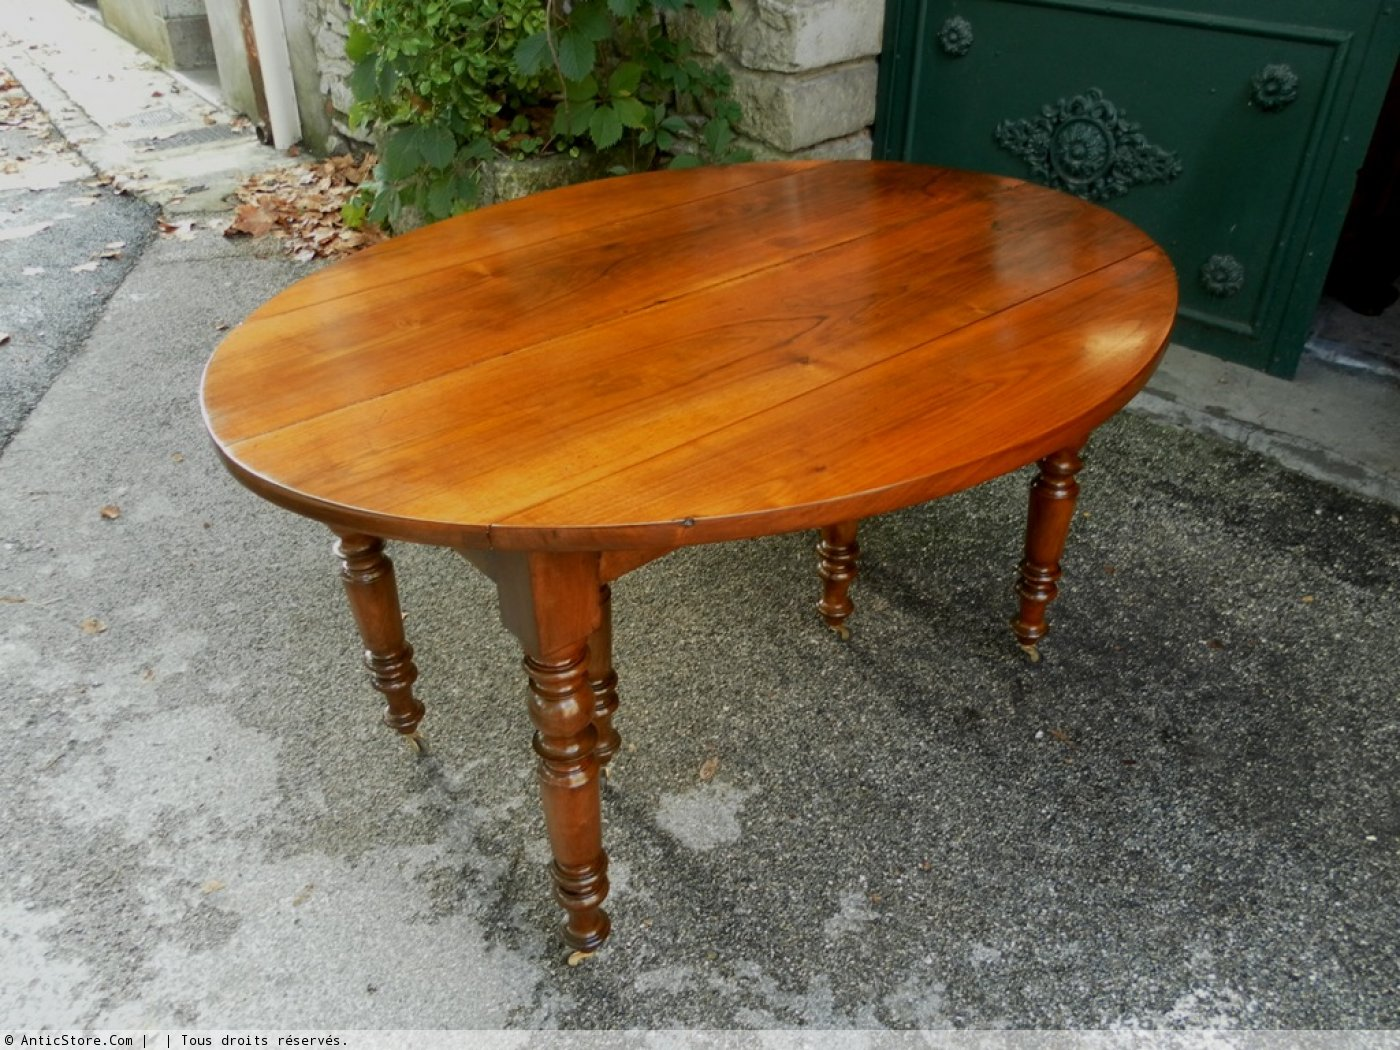 Table ovale louis philippe en noyer xixe si cle - Table ancienne repeinte ...